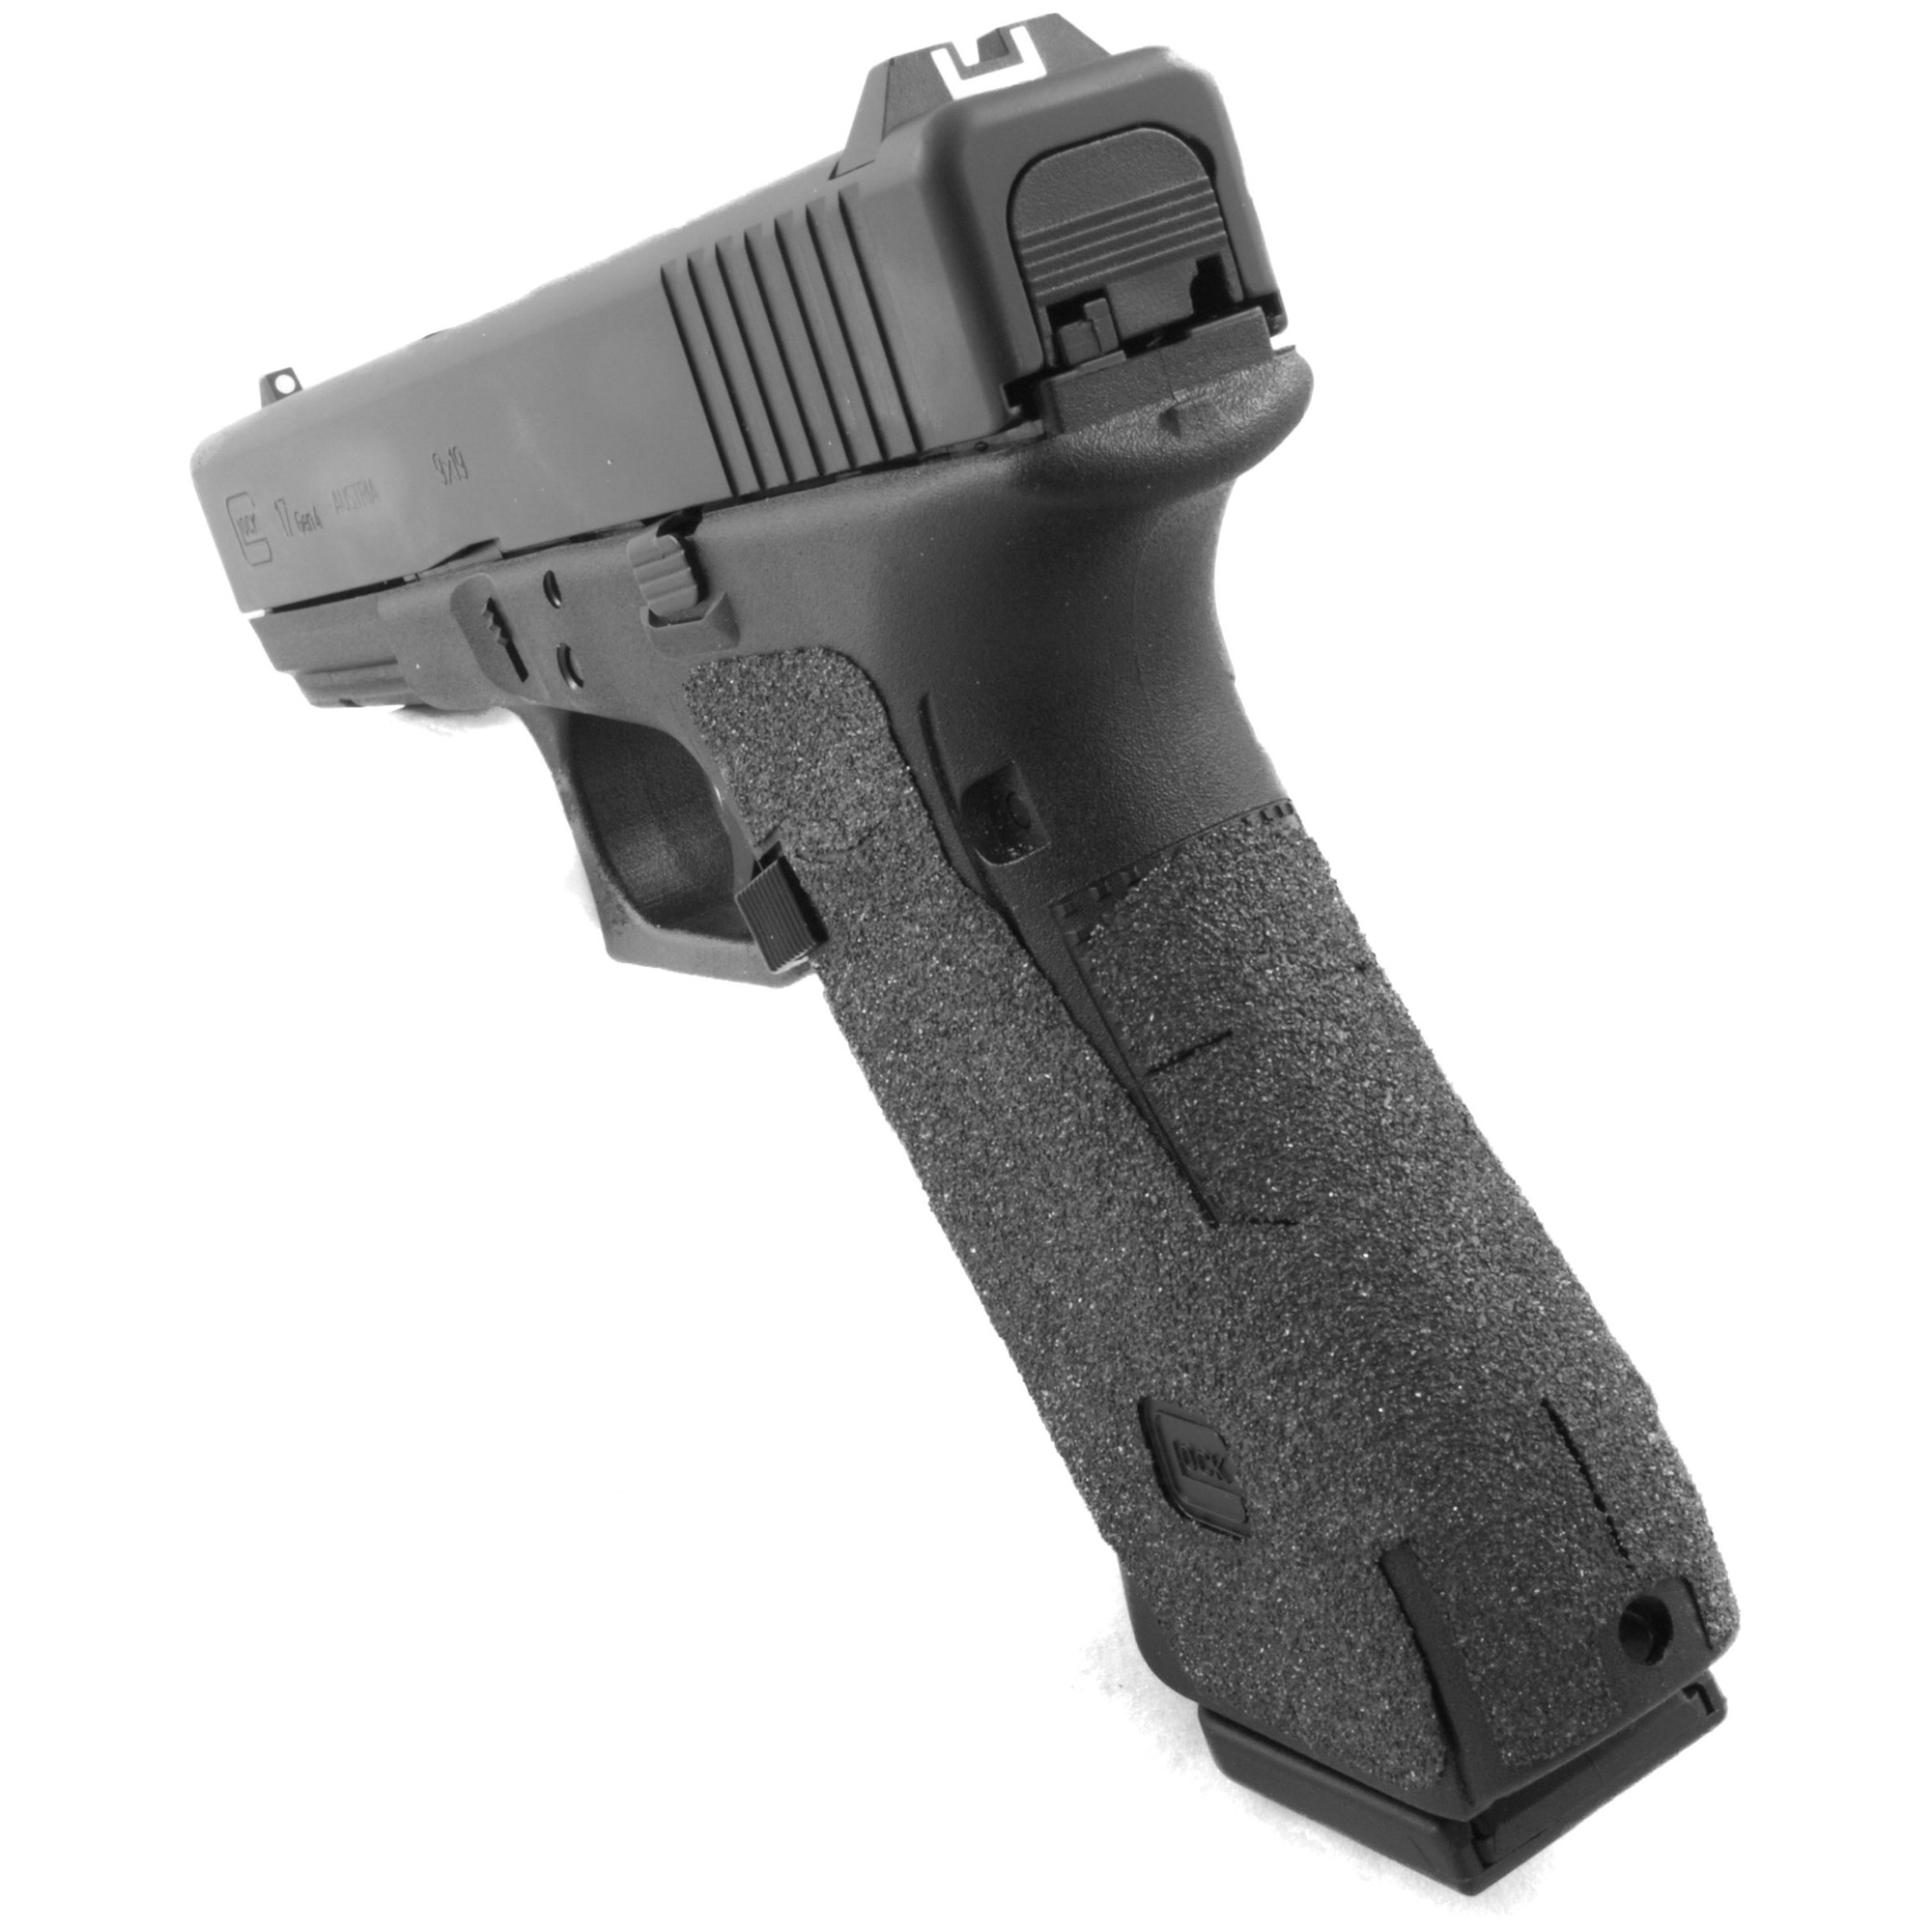 """TALON Grips for Glock Gen 4 Model 17"""" 22"""" 24"""" 31"""" 34"""" 35"""" and 37 with a Medium Backstrap. This rear wrap grip is in the granulate texture. This grip provides full coverage on the side panels including above the thumb rest"""" ample coverage on the backstrap"""" and three finger wraps for the finger groves under the trigger guard. This grip has a logo cutout for the Glock emblem on the left side of the handle. This grip sticks extremely well even with the Rough Textured Frame (RTF). The medium backstrap will fit both the medium and the medium beavertail backstrap."""